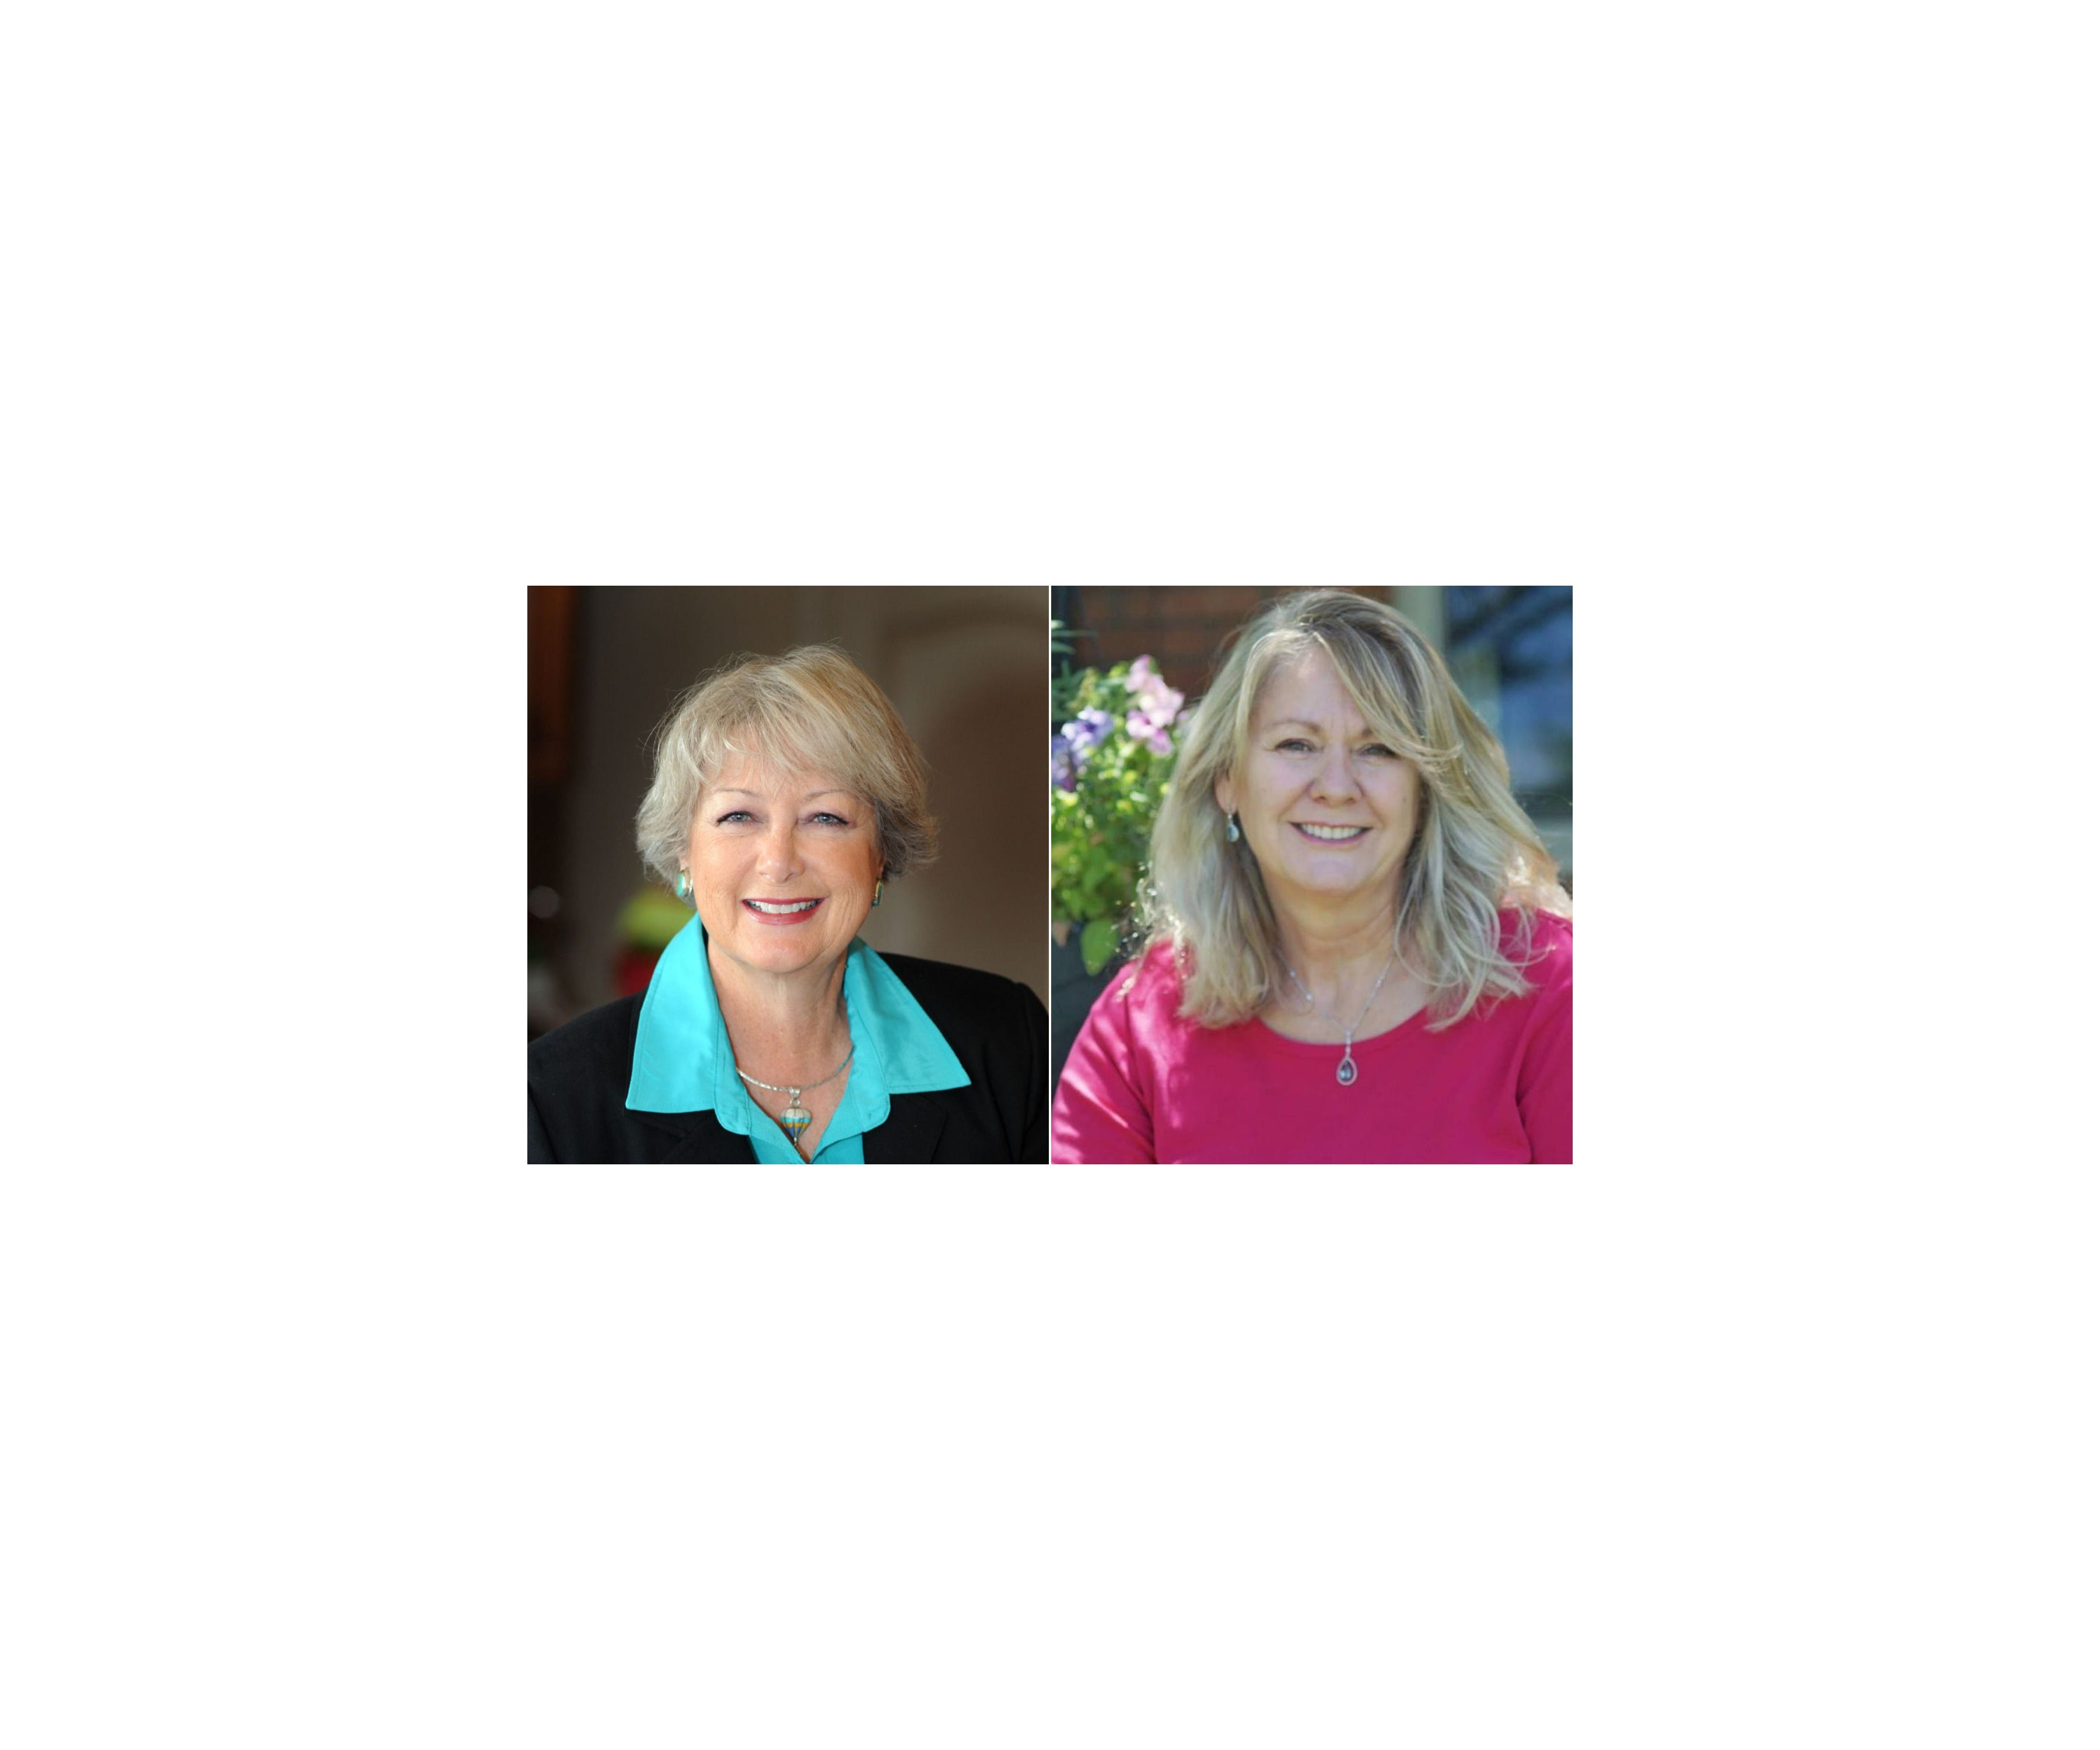 Joanne Ferrary challenged by Bev Courtney in District 37 House race | Las Cruces Sun